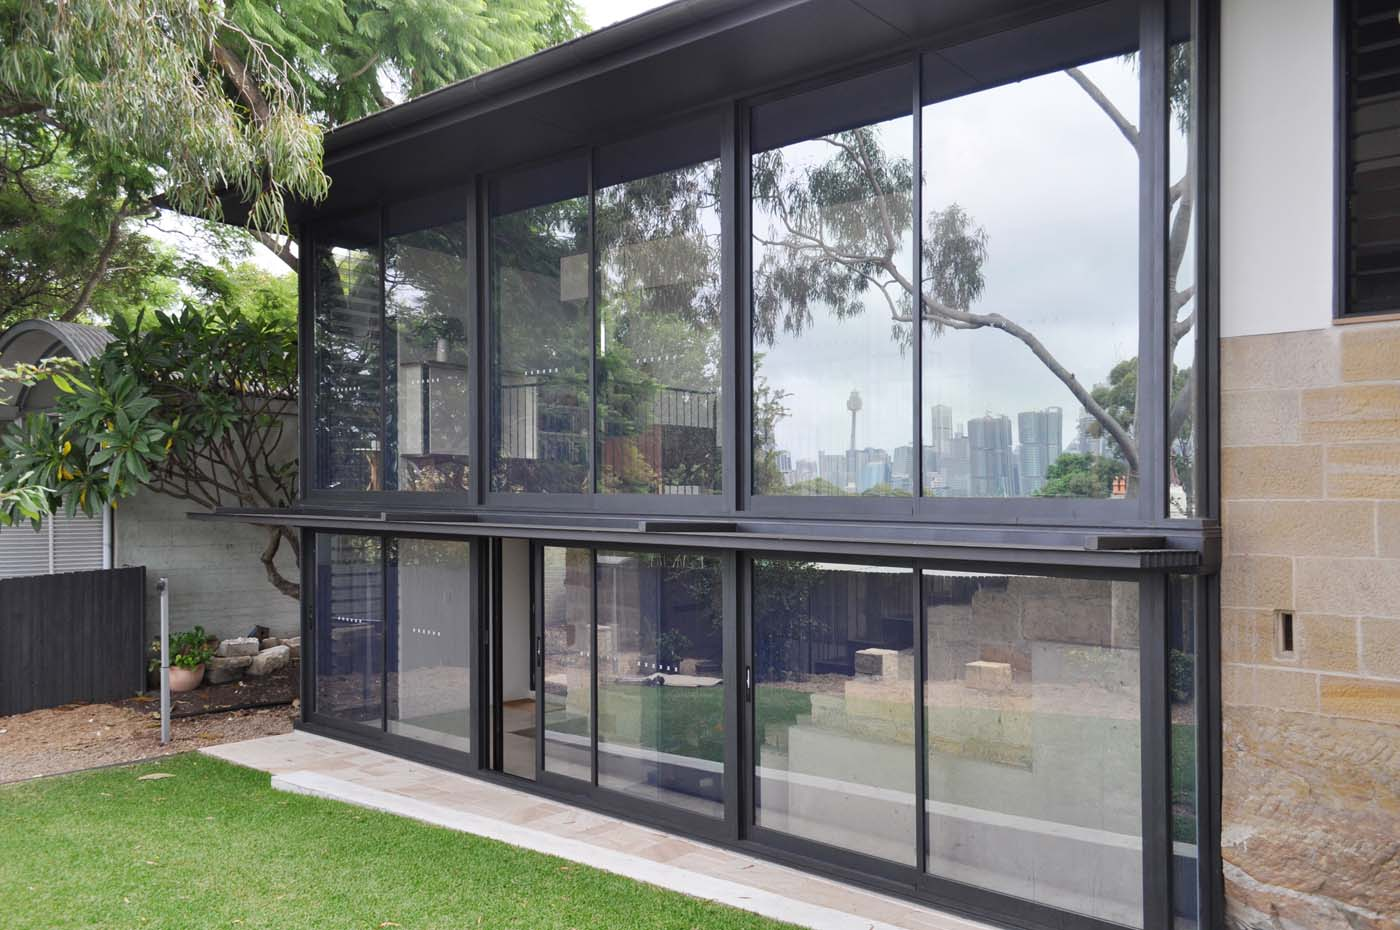 Balmain Cottage by award winning Sydney firm Sam Crawford Architects. Large glass façade reflect view to the city blending with greenery